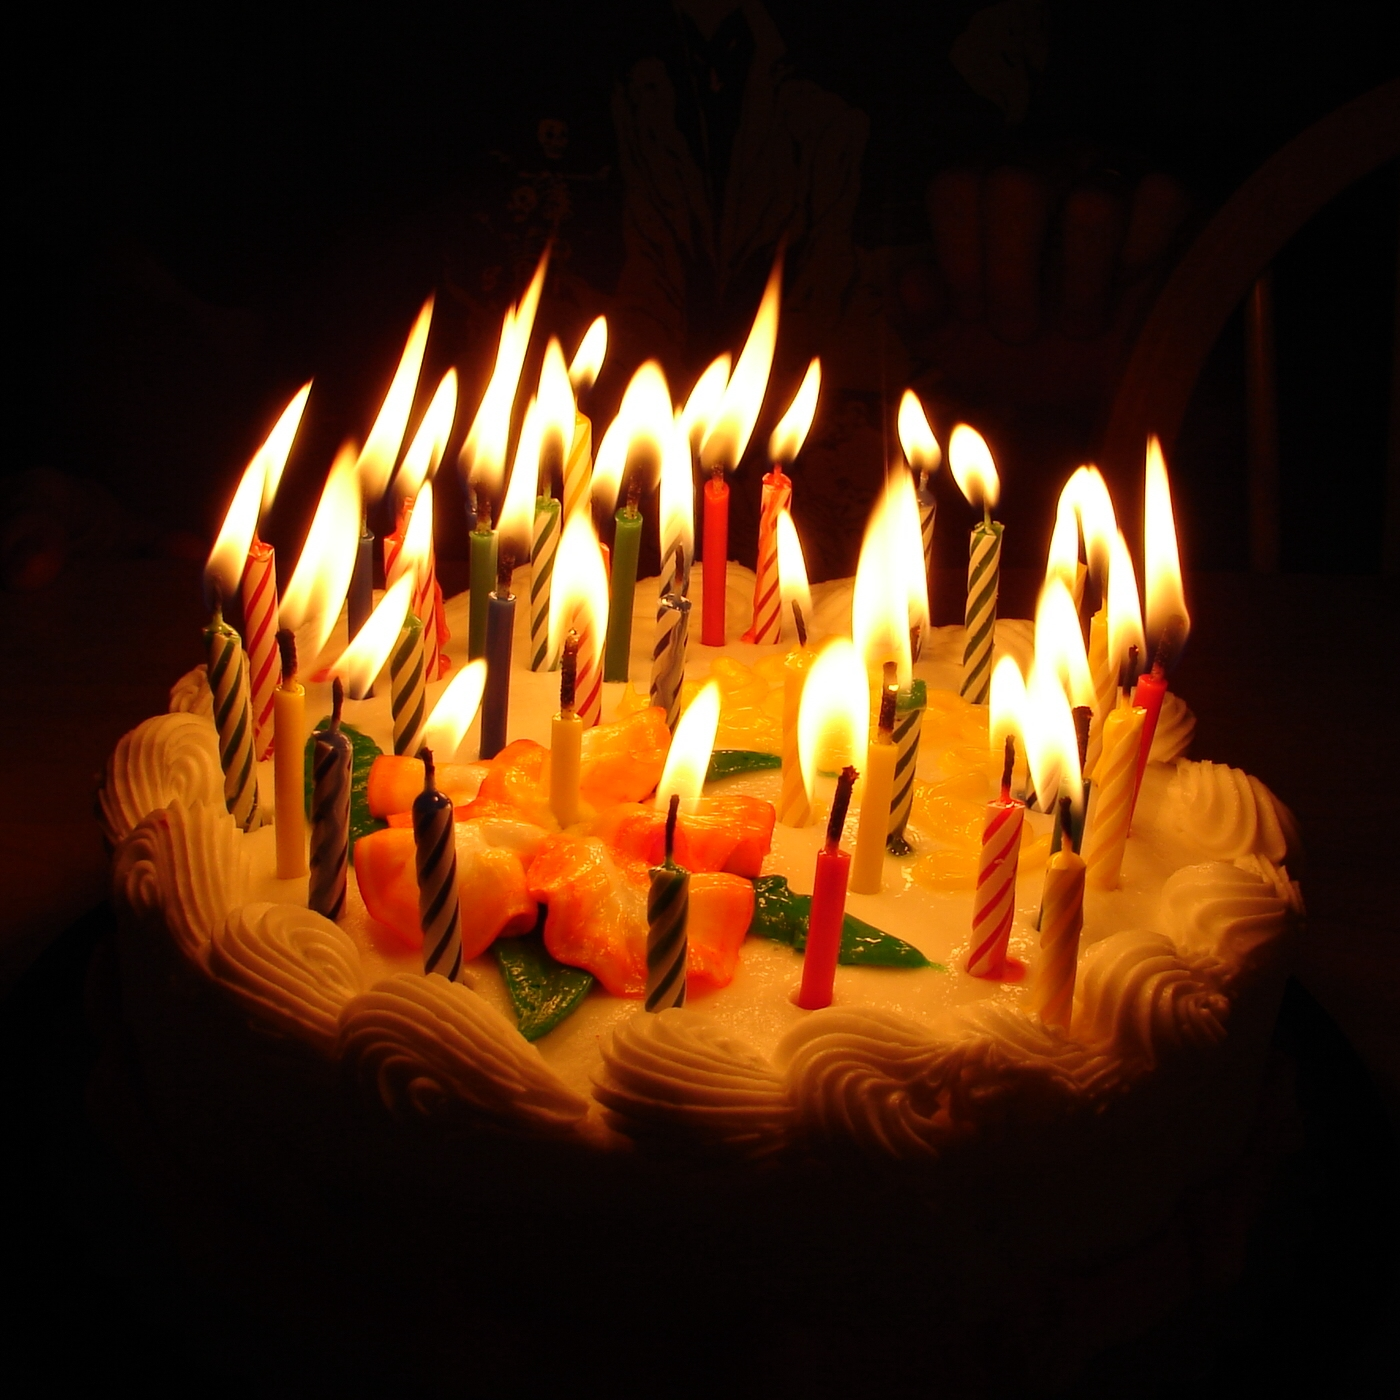 Birthday Cake With Lit Candles By FantasyStock